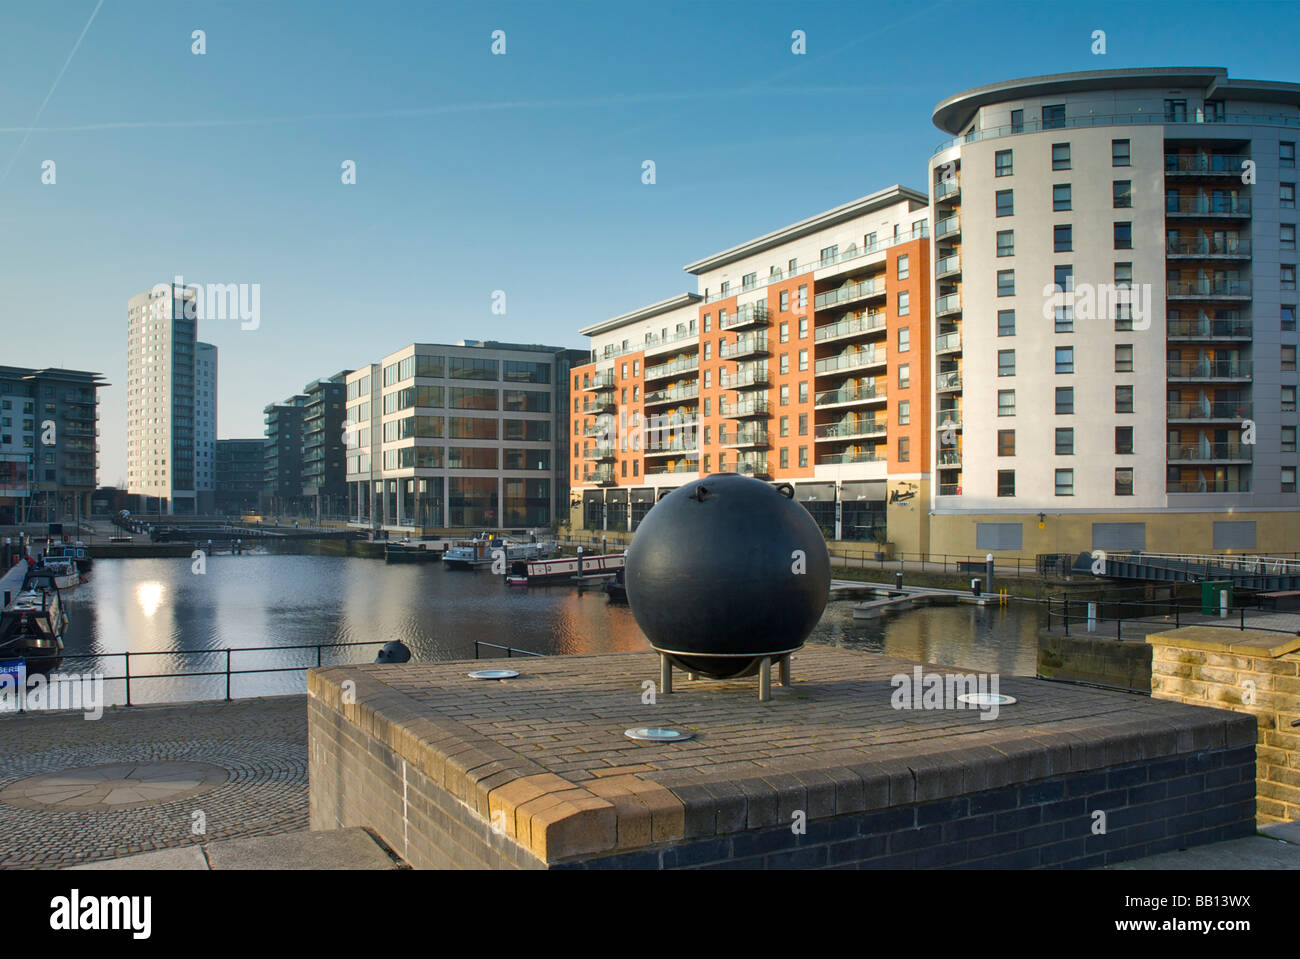 Clarence Dock, a new development in Leeds, West Yorkshire, England UK Stock Photo